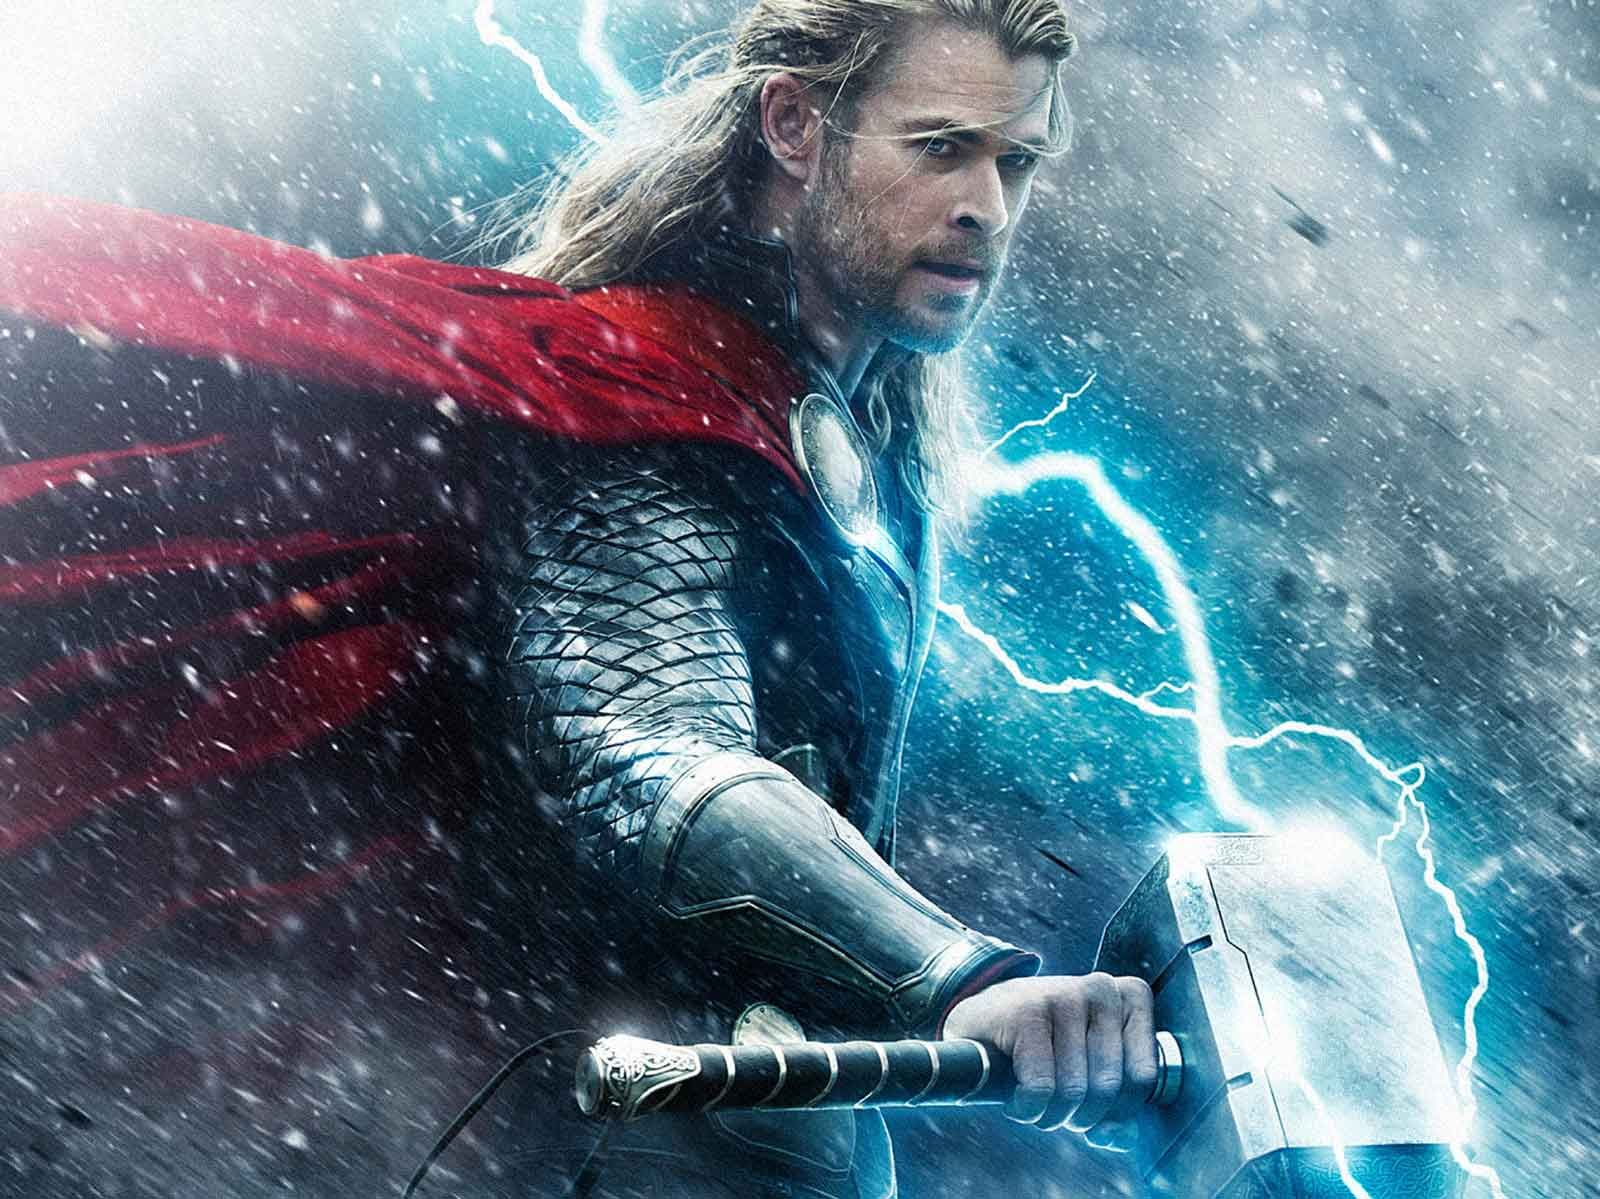 Full Hd P Thor Wallpapers Hd Desktop Backgrounds 1920 1080 Thor Hd Wallpapers 35 Wallpapers Adorable Wallpaper The Dark World World Movies Thor Wallpaper